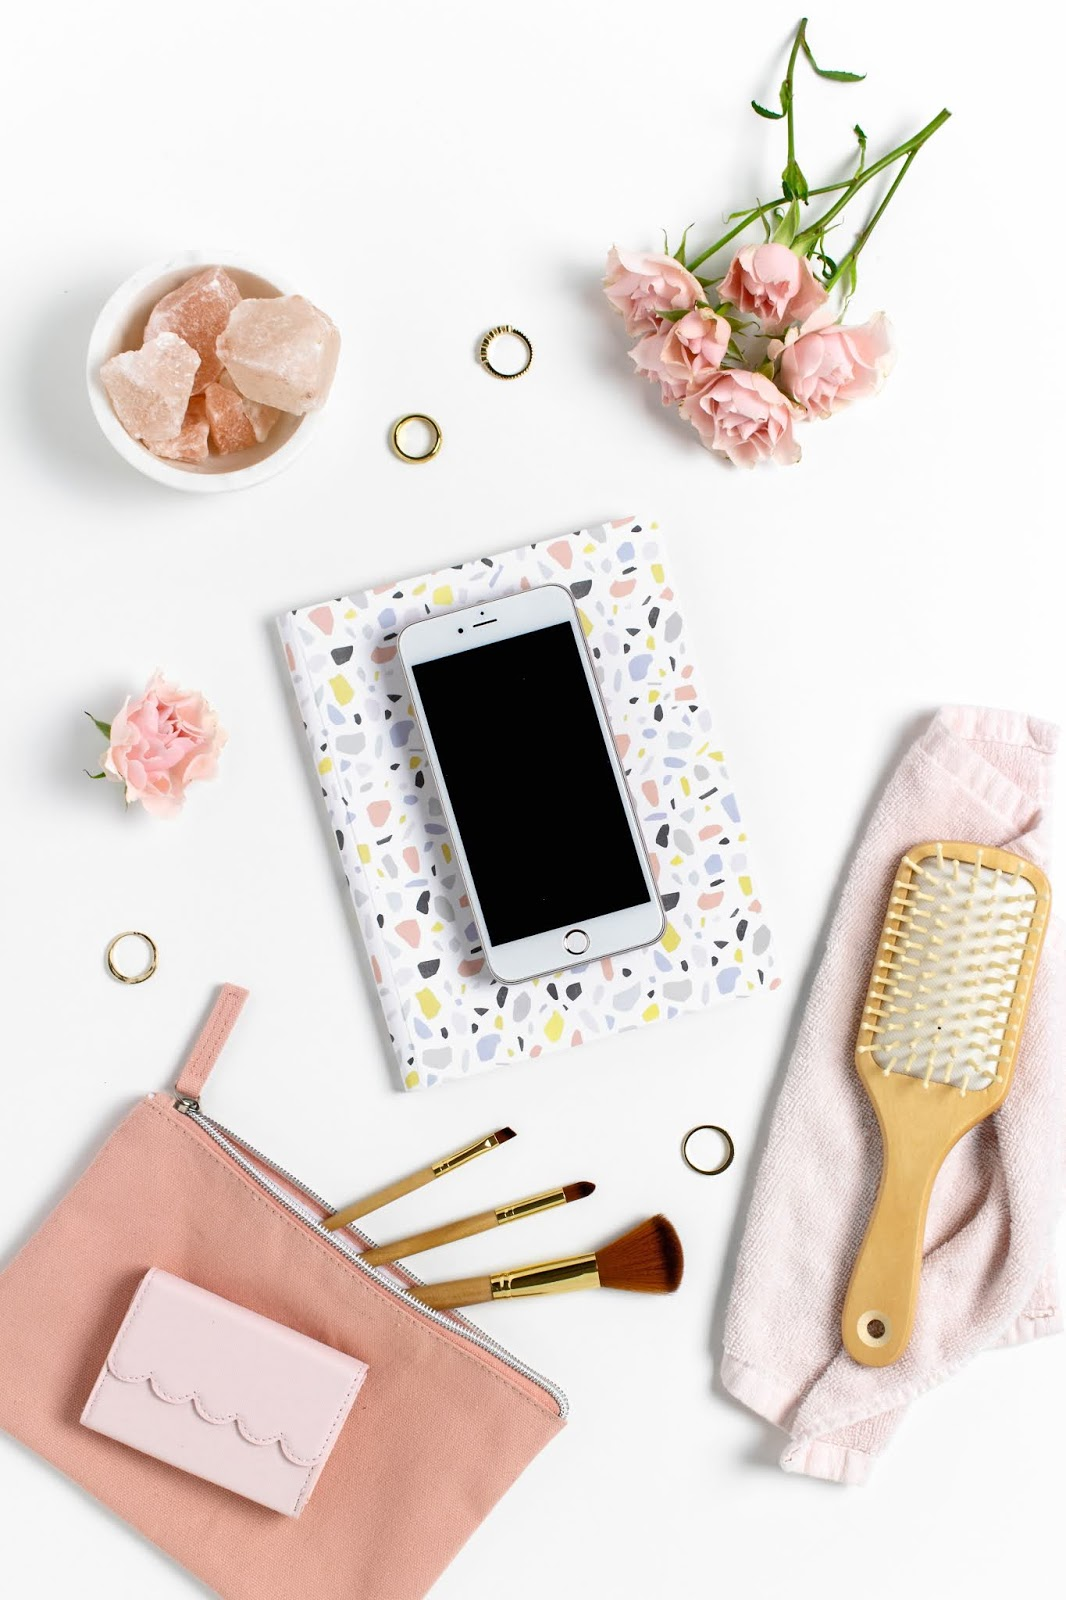 Birds eye view of a phone on a white table with pink flowers and a notebook